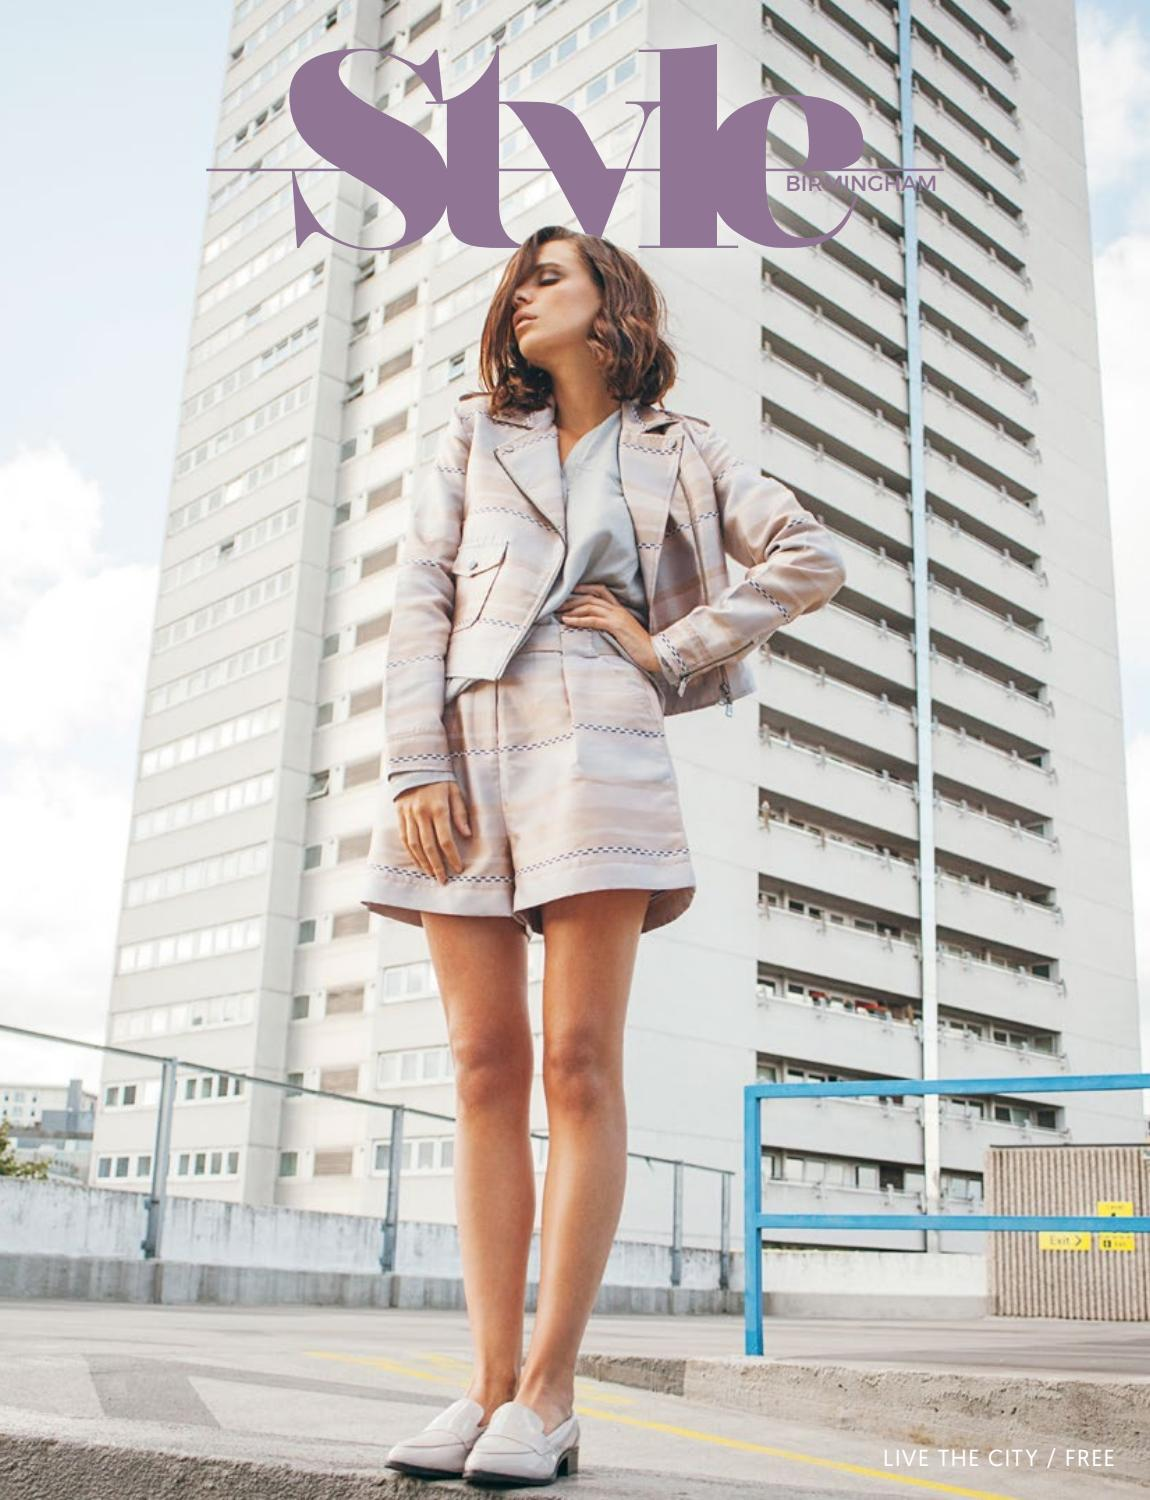 561b40bd4fb Style Birmingham - Issue 45 by RileyRaven - issuu